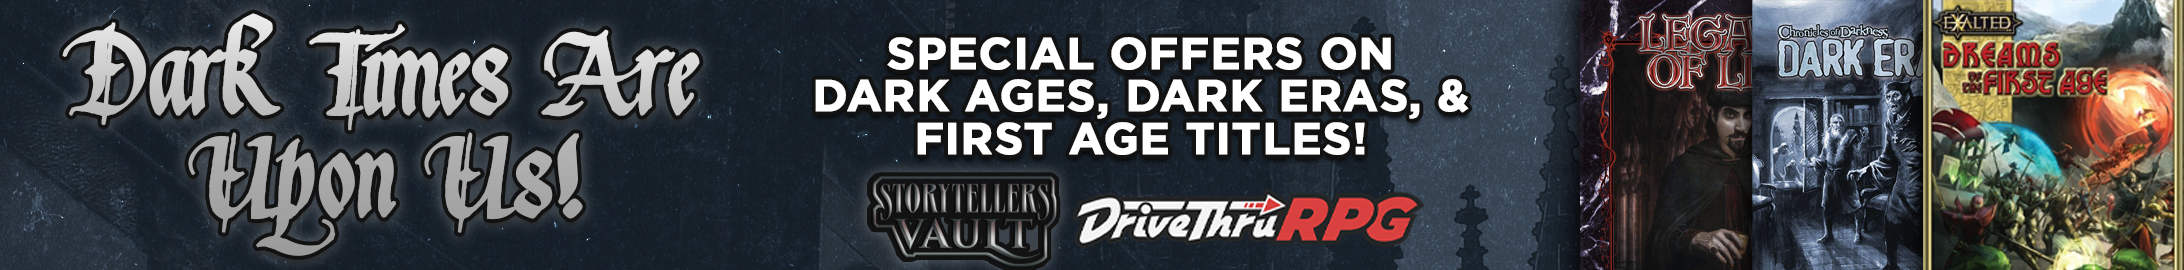 Special offers on Dark Ages, Dark Eras, & First Age titles @ Storytellers Vault